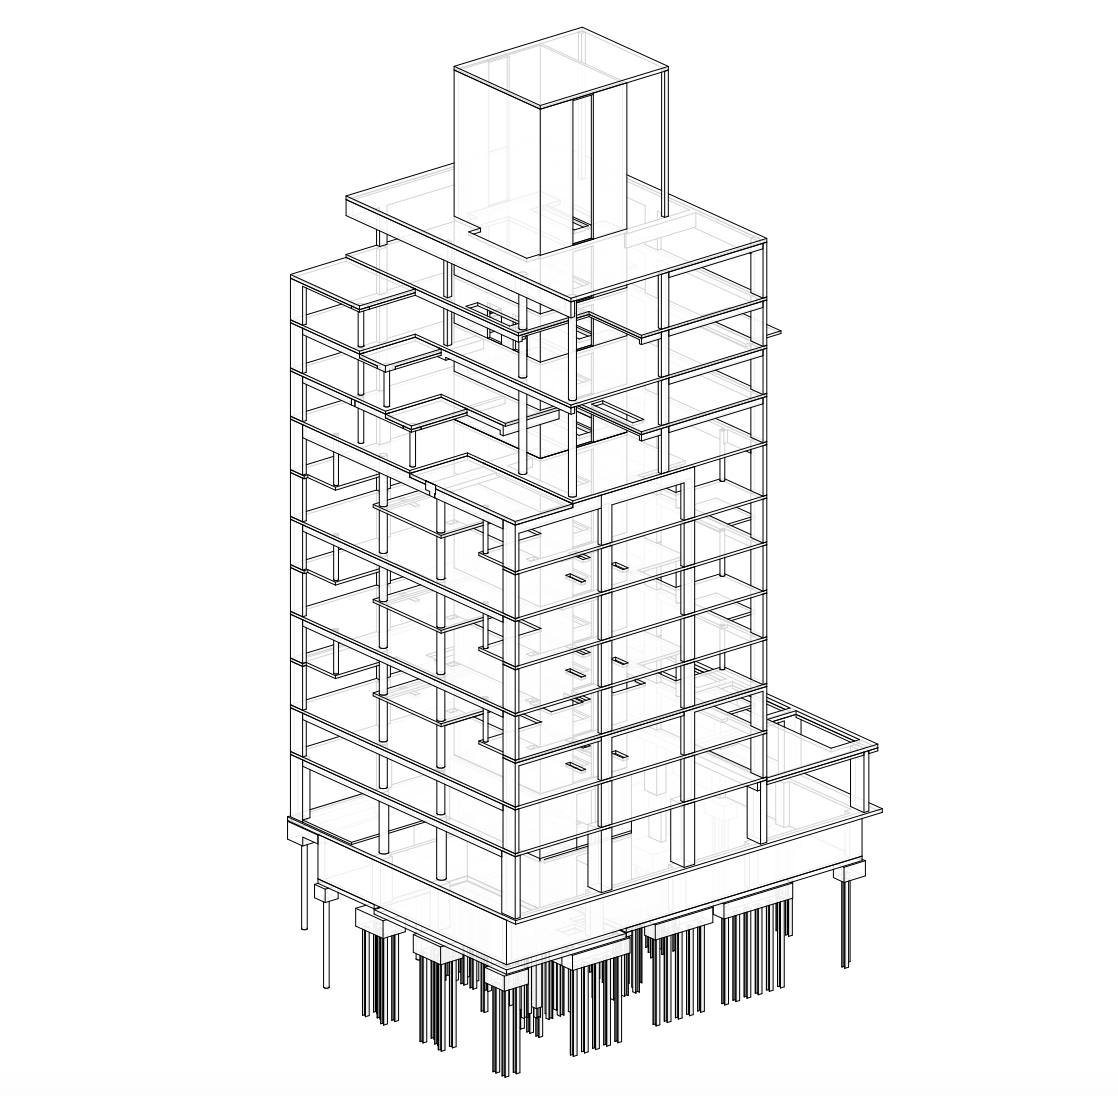 Permits Approved For 550 West 29th Street West Chelsea